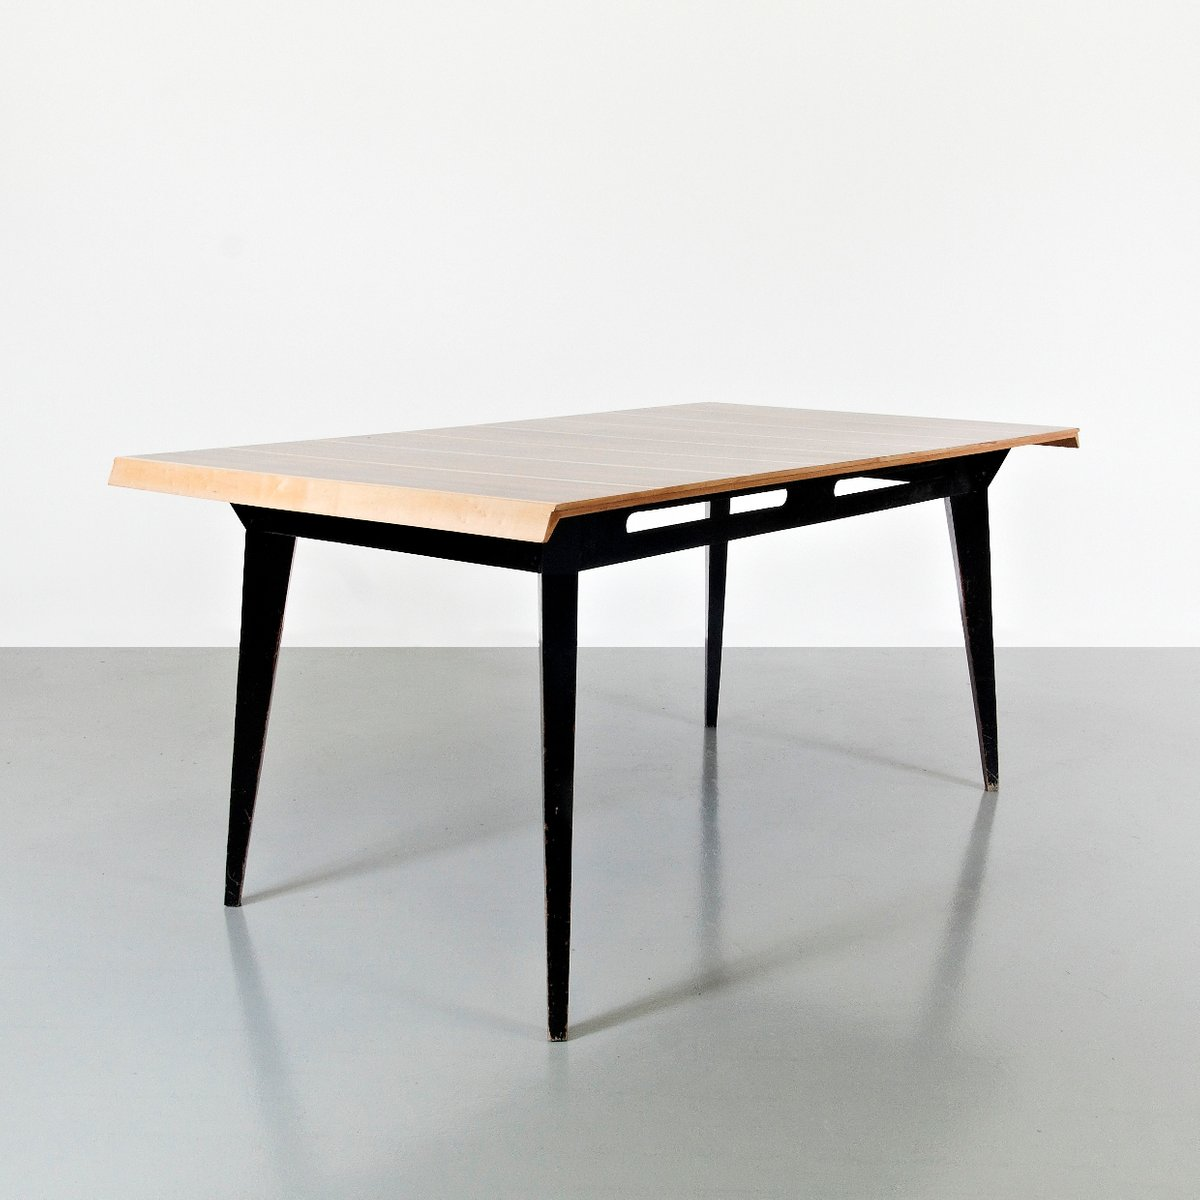 Dining Table By Robin Day For Hillie 1950s For Sale At Pamono